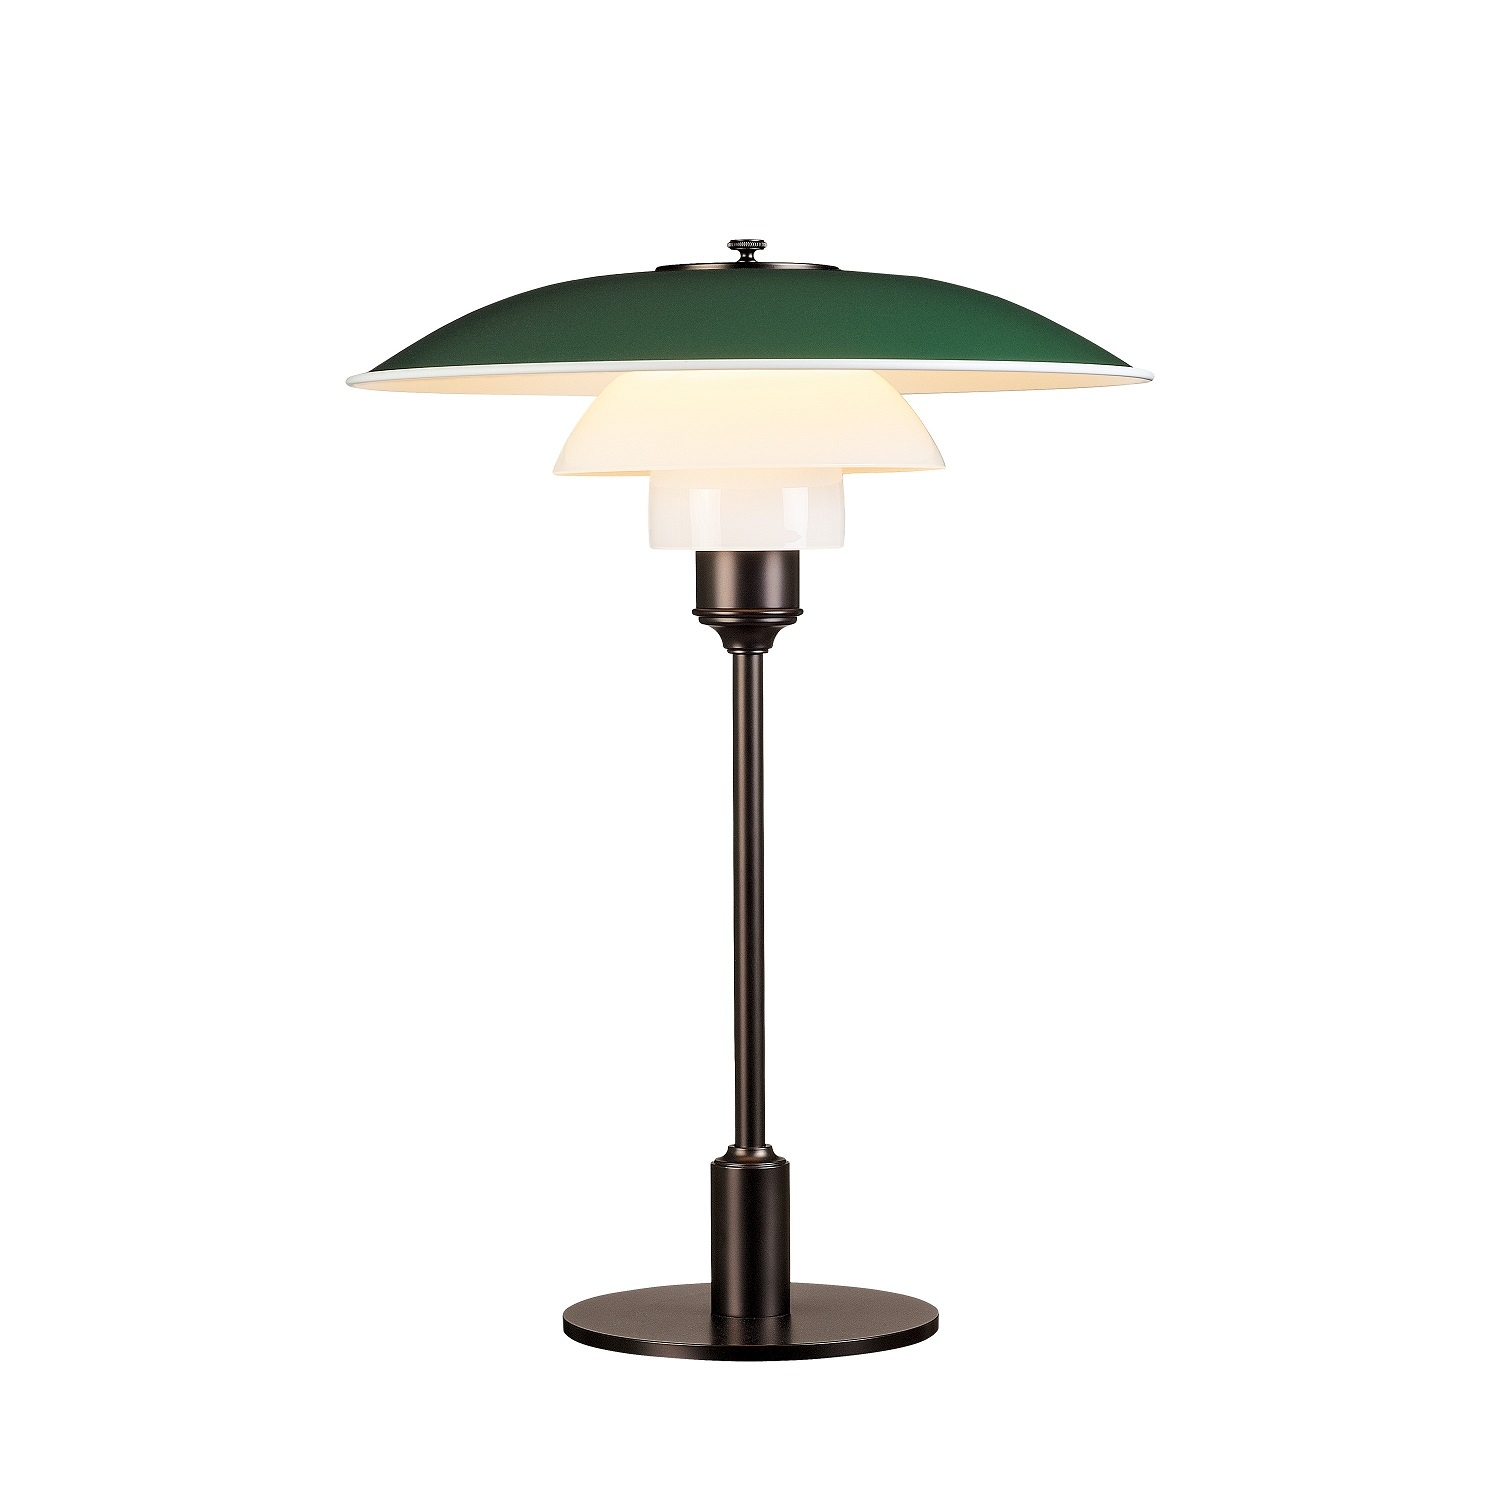 Ph 3 2 Louis Poulsen Lampe De Table Milia Shop